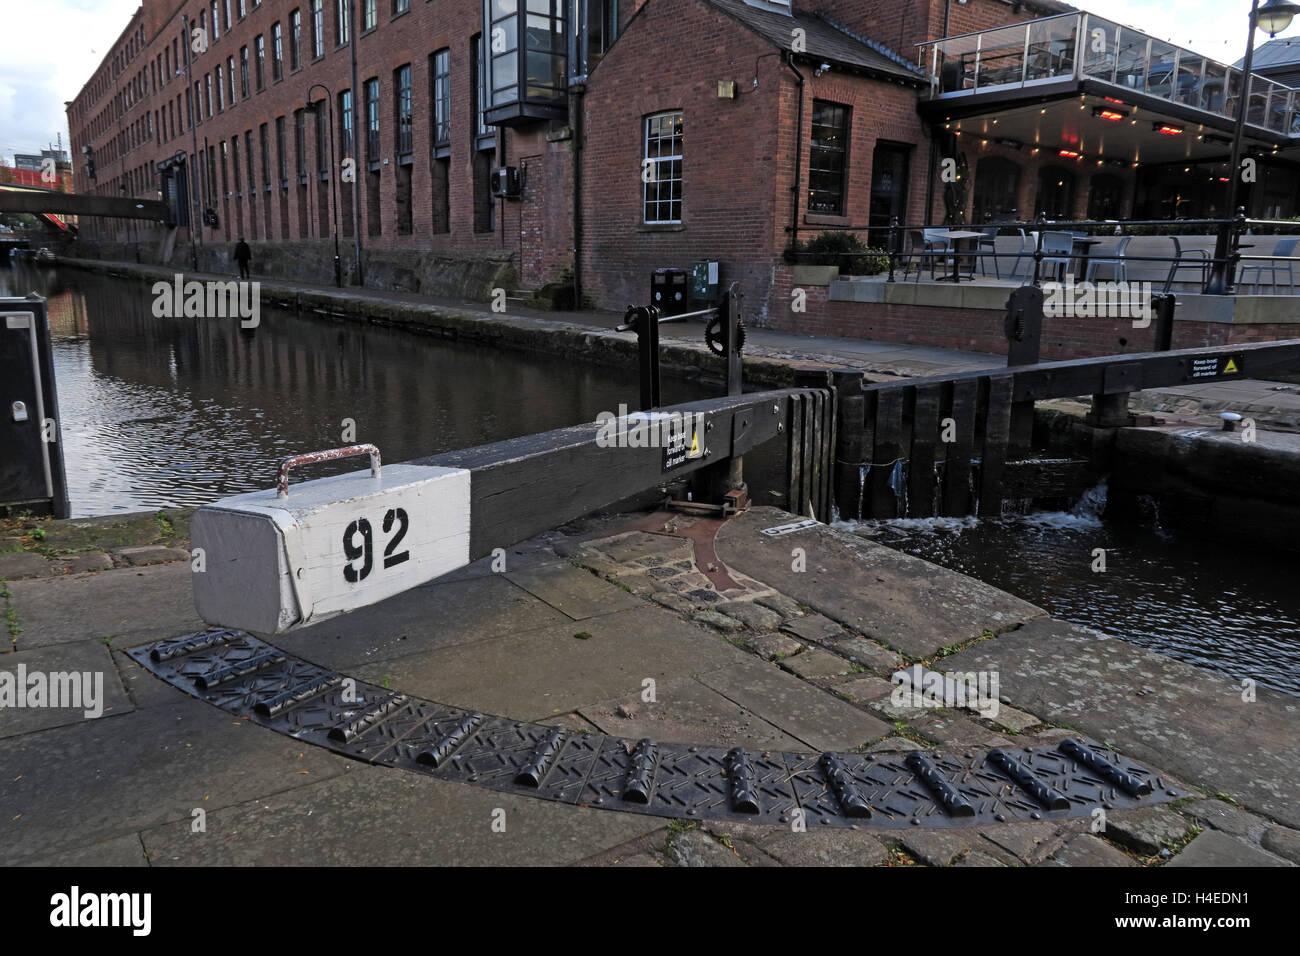 Lock,92,City,Centre,Lancs,Lancashire,Castlefields,water,waterway,waterways,British,Leeds,Liverpool,M3,industry,industrial,heritage,workshop,of,the,world,Lock 92,City Centre,Canal Network,British Waterways,Leeds Liverpool Canal,M3 4LZ,GoTonySmith,@HotpixUK,Tony,Smith,UK,GB,Great,Britain,United,Kingdom,English,British,England,Buy Pictures of,Buy Images Of,Images of,Stock Images,Tony Smith,United Kingdom,Great Britain,British Isles